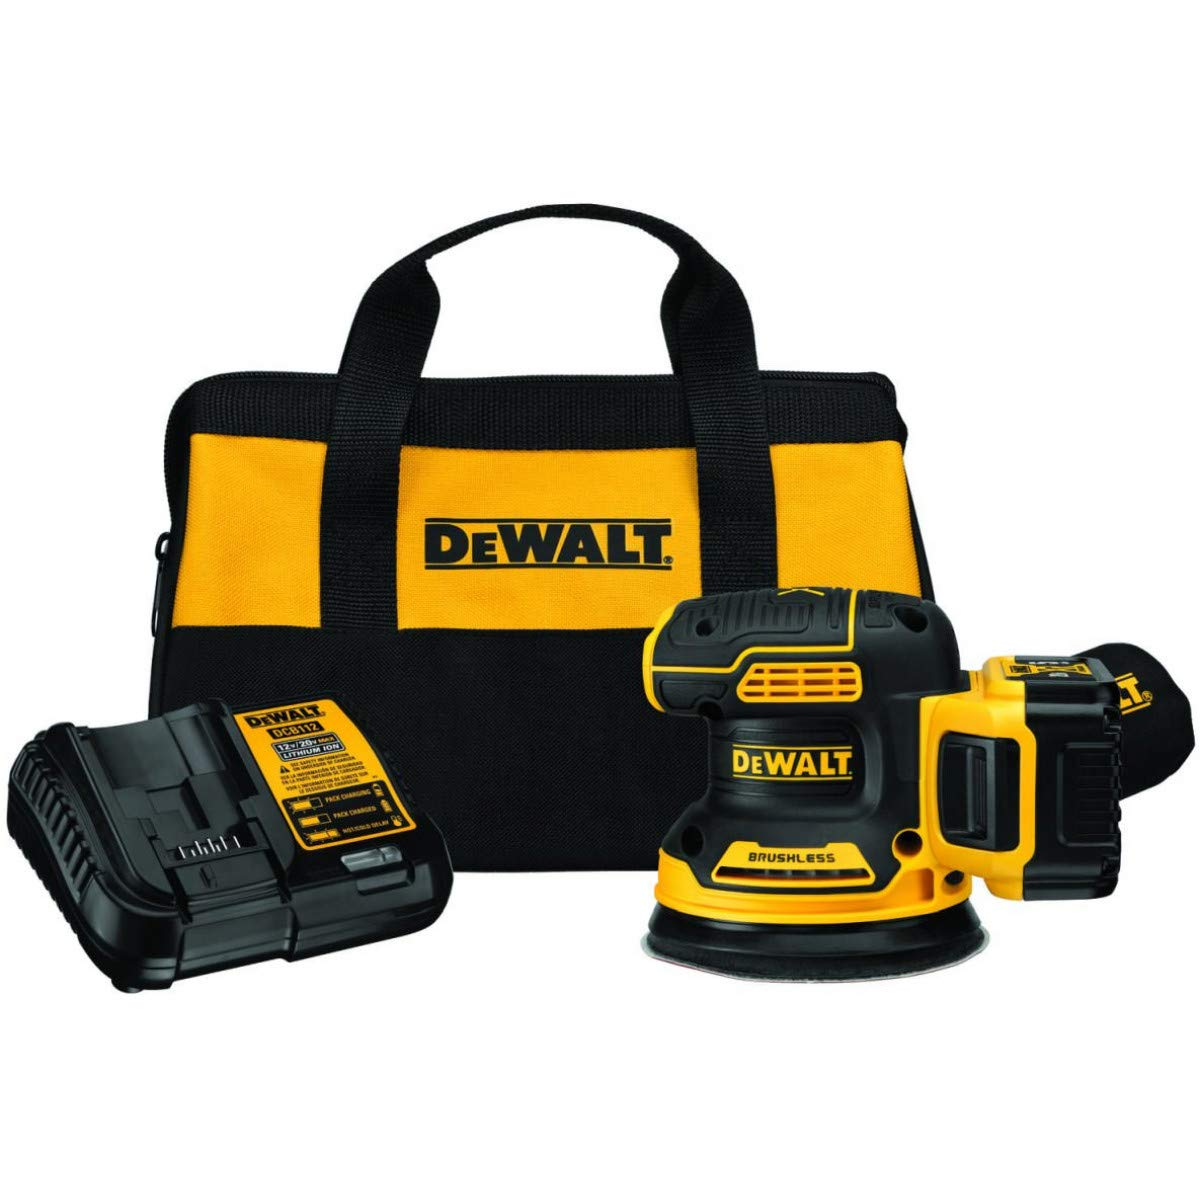 DEWALT DCW210P1 featured image